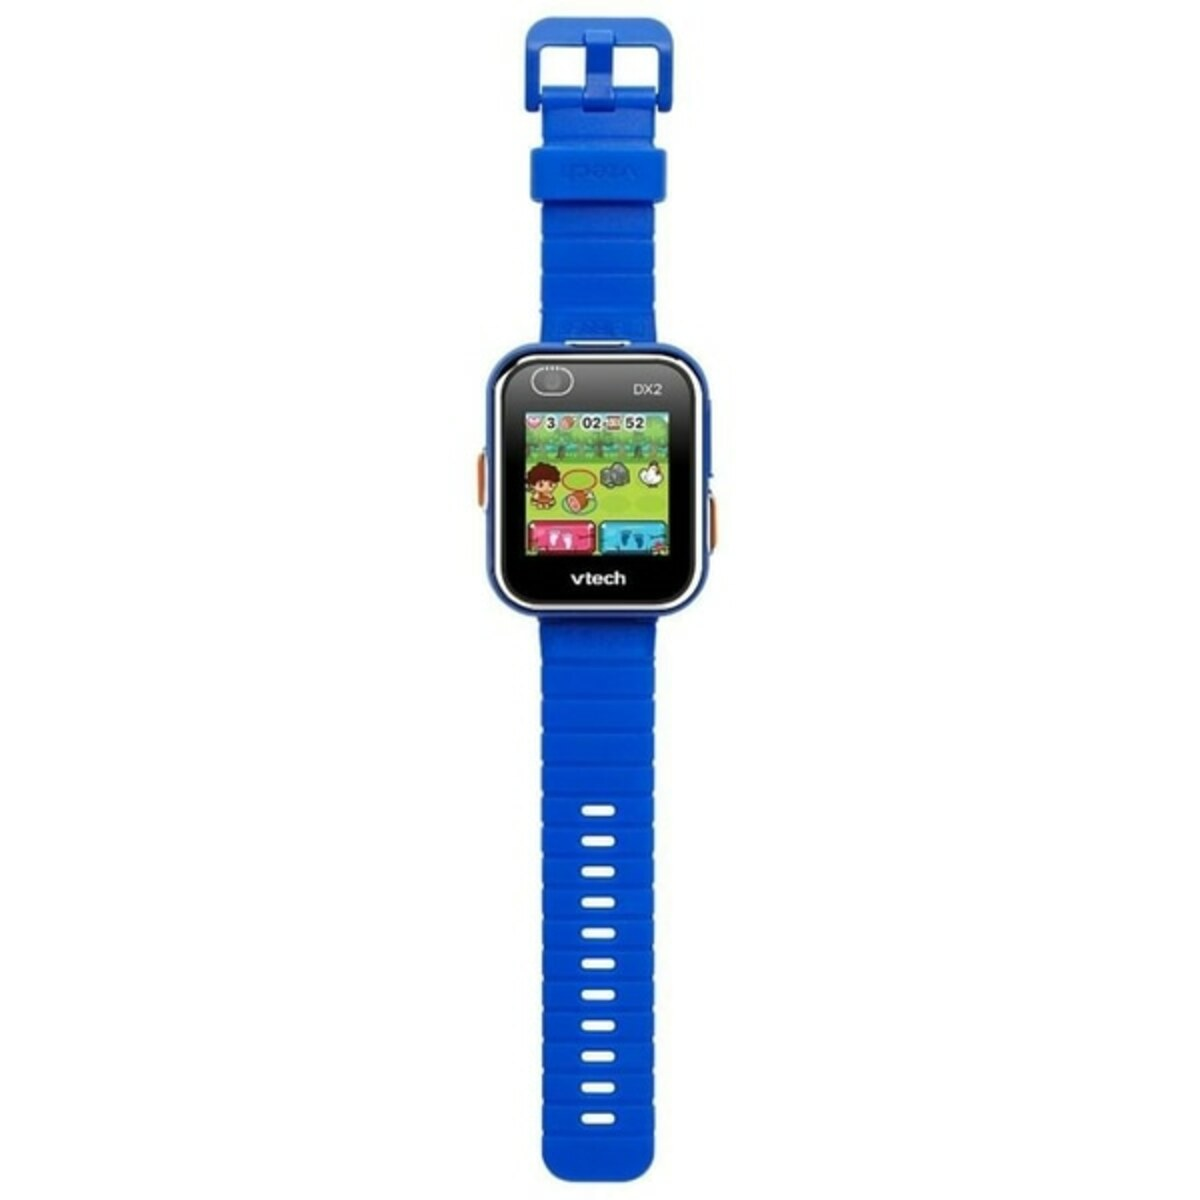 Bild 3 von VTech - Kidizoom: Smart Watch DX2, blau